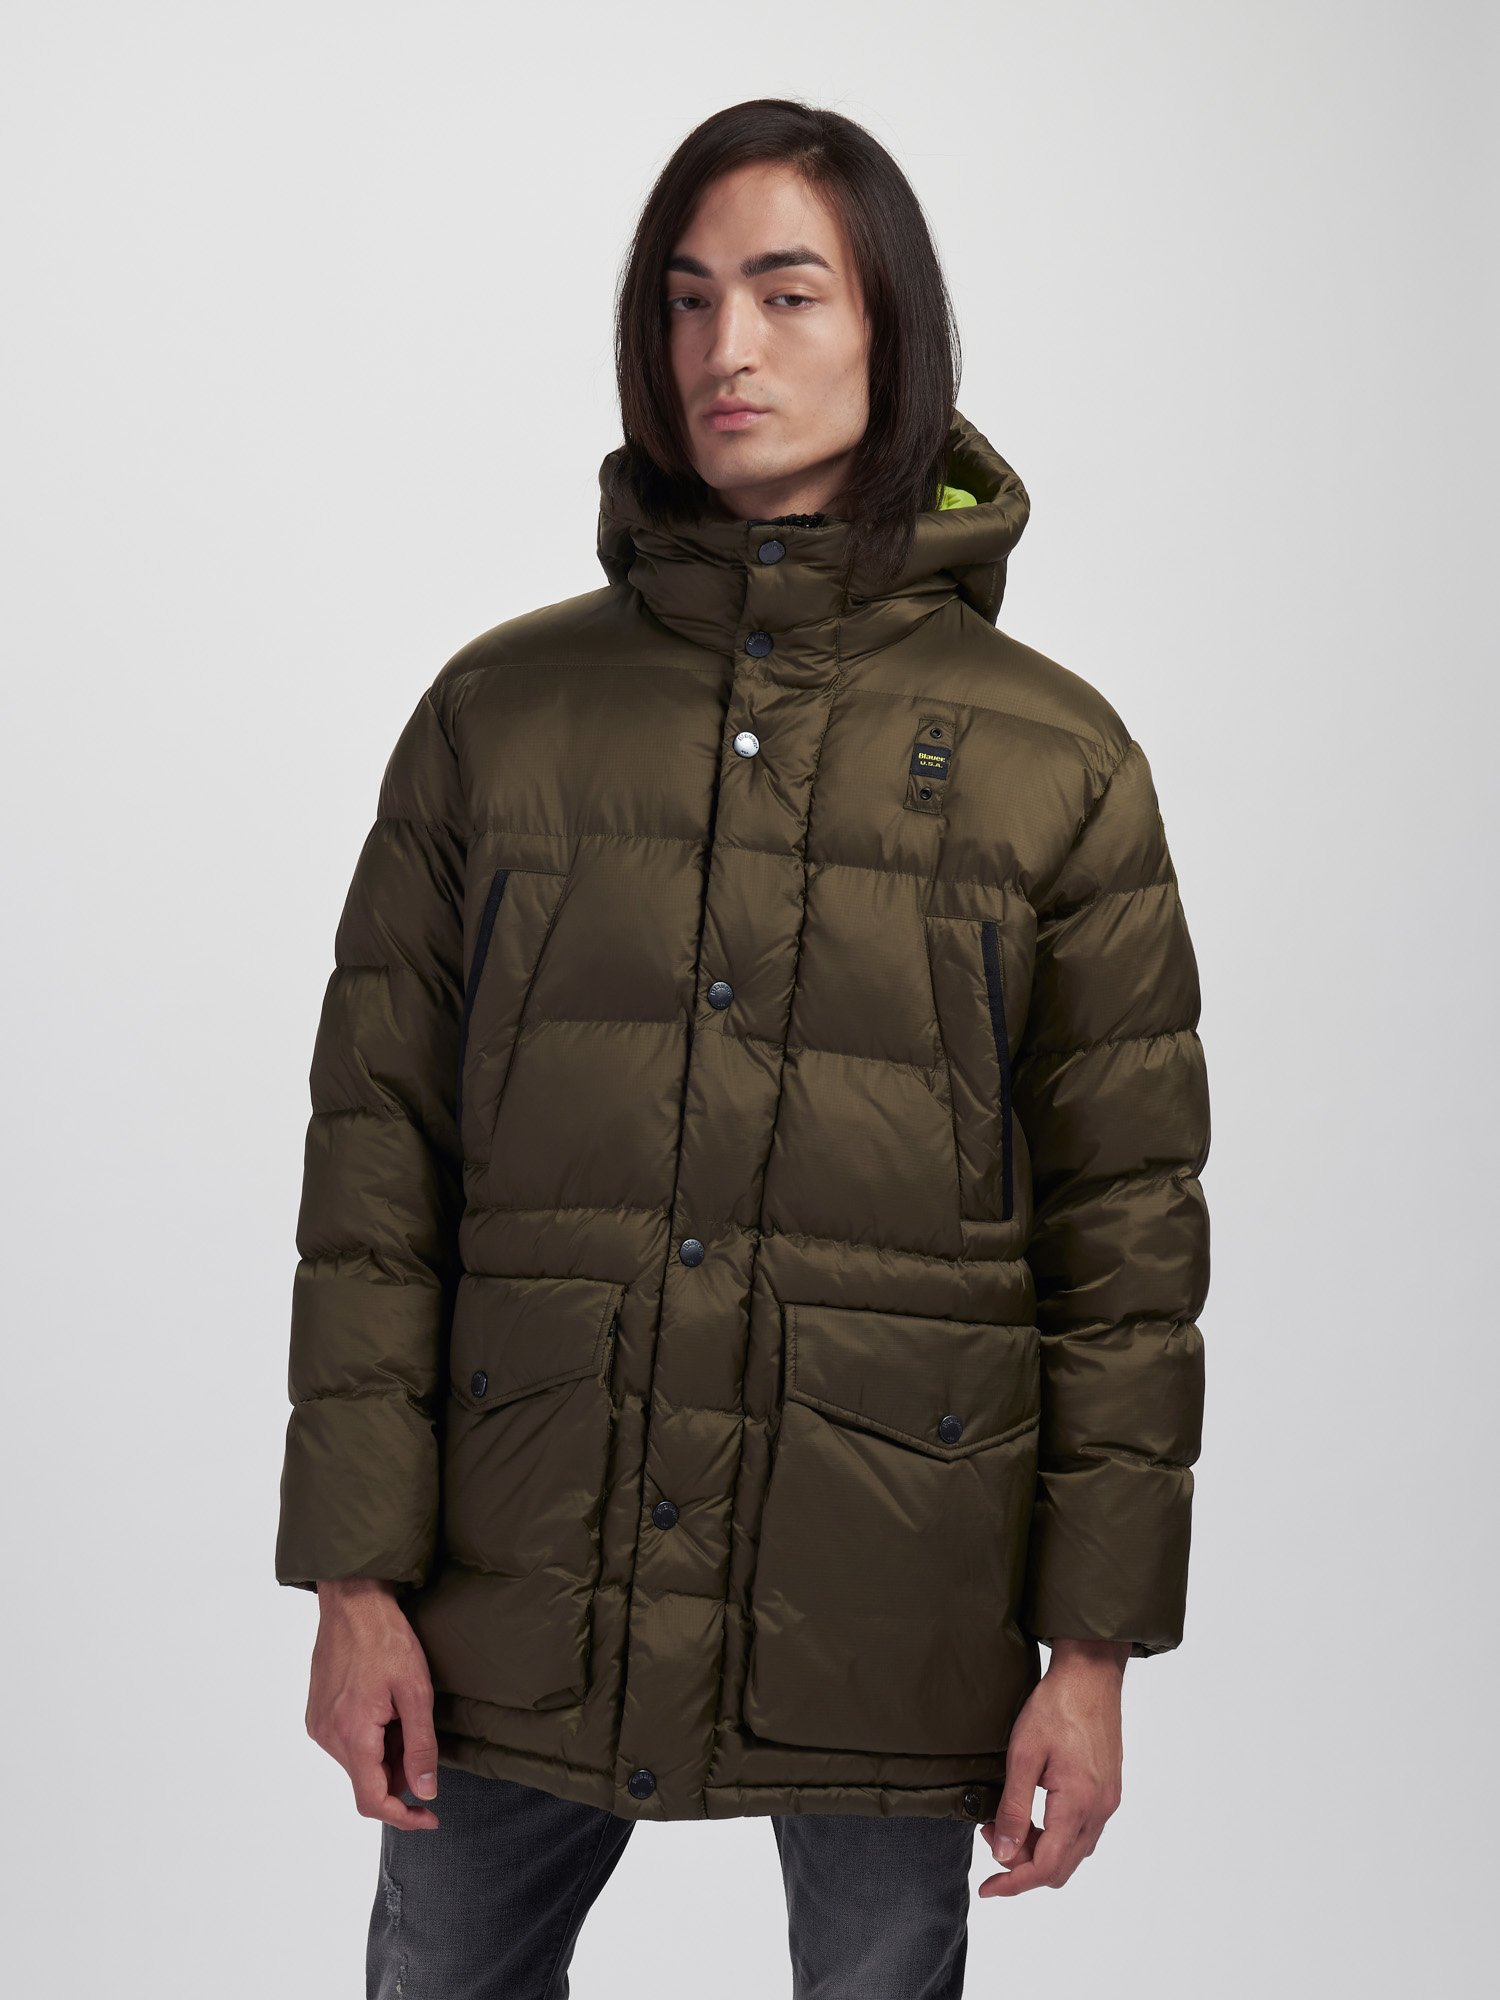 ROGER LONG JACKET IN NYLON WITH HOOD - Blauer